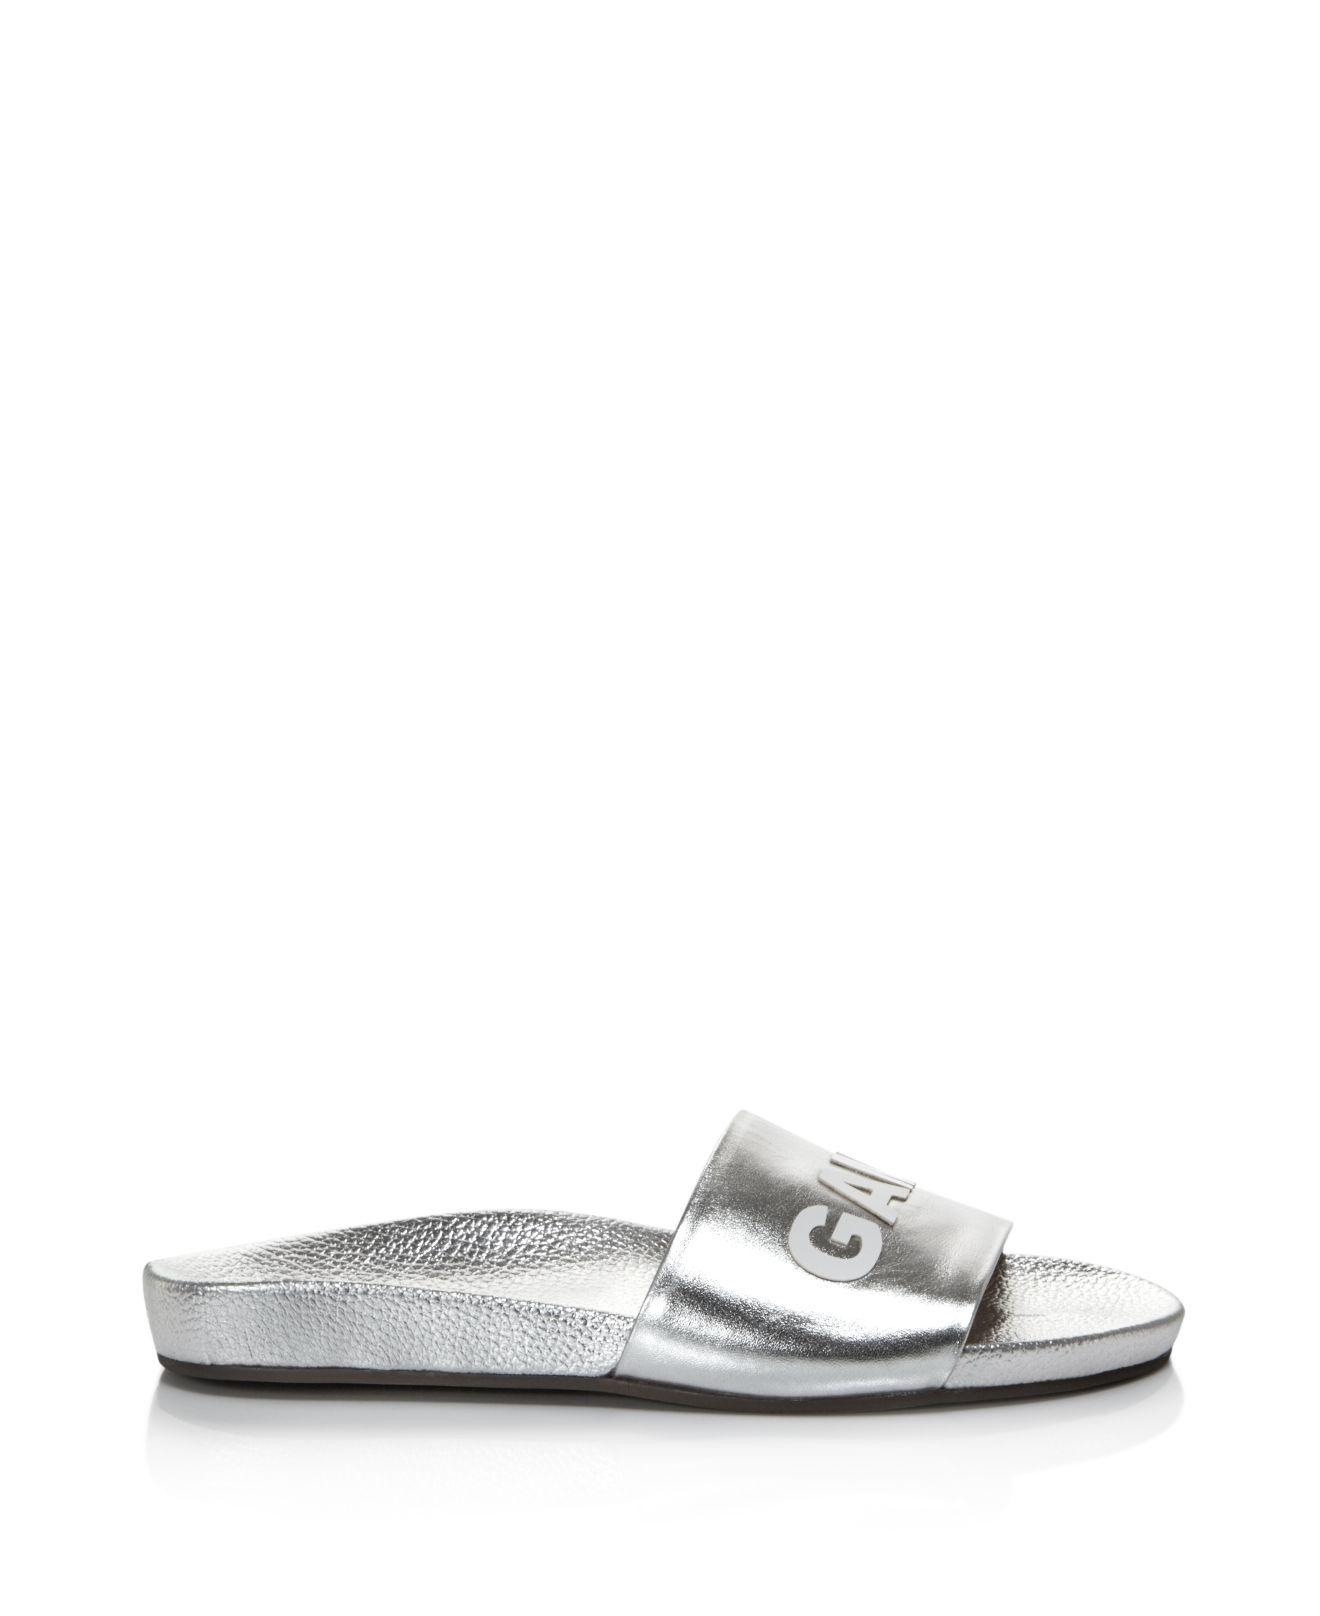 Schutz Women's Game Over Leather Pool Slide Sandals - 100% Exclusive Oa1WHDhh4b